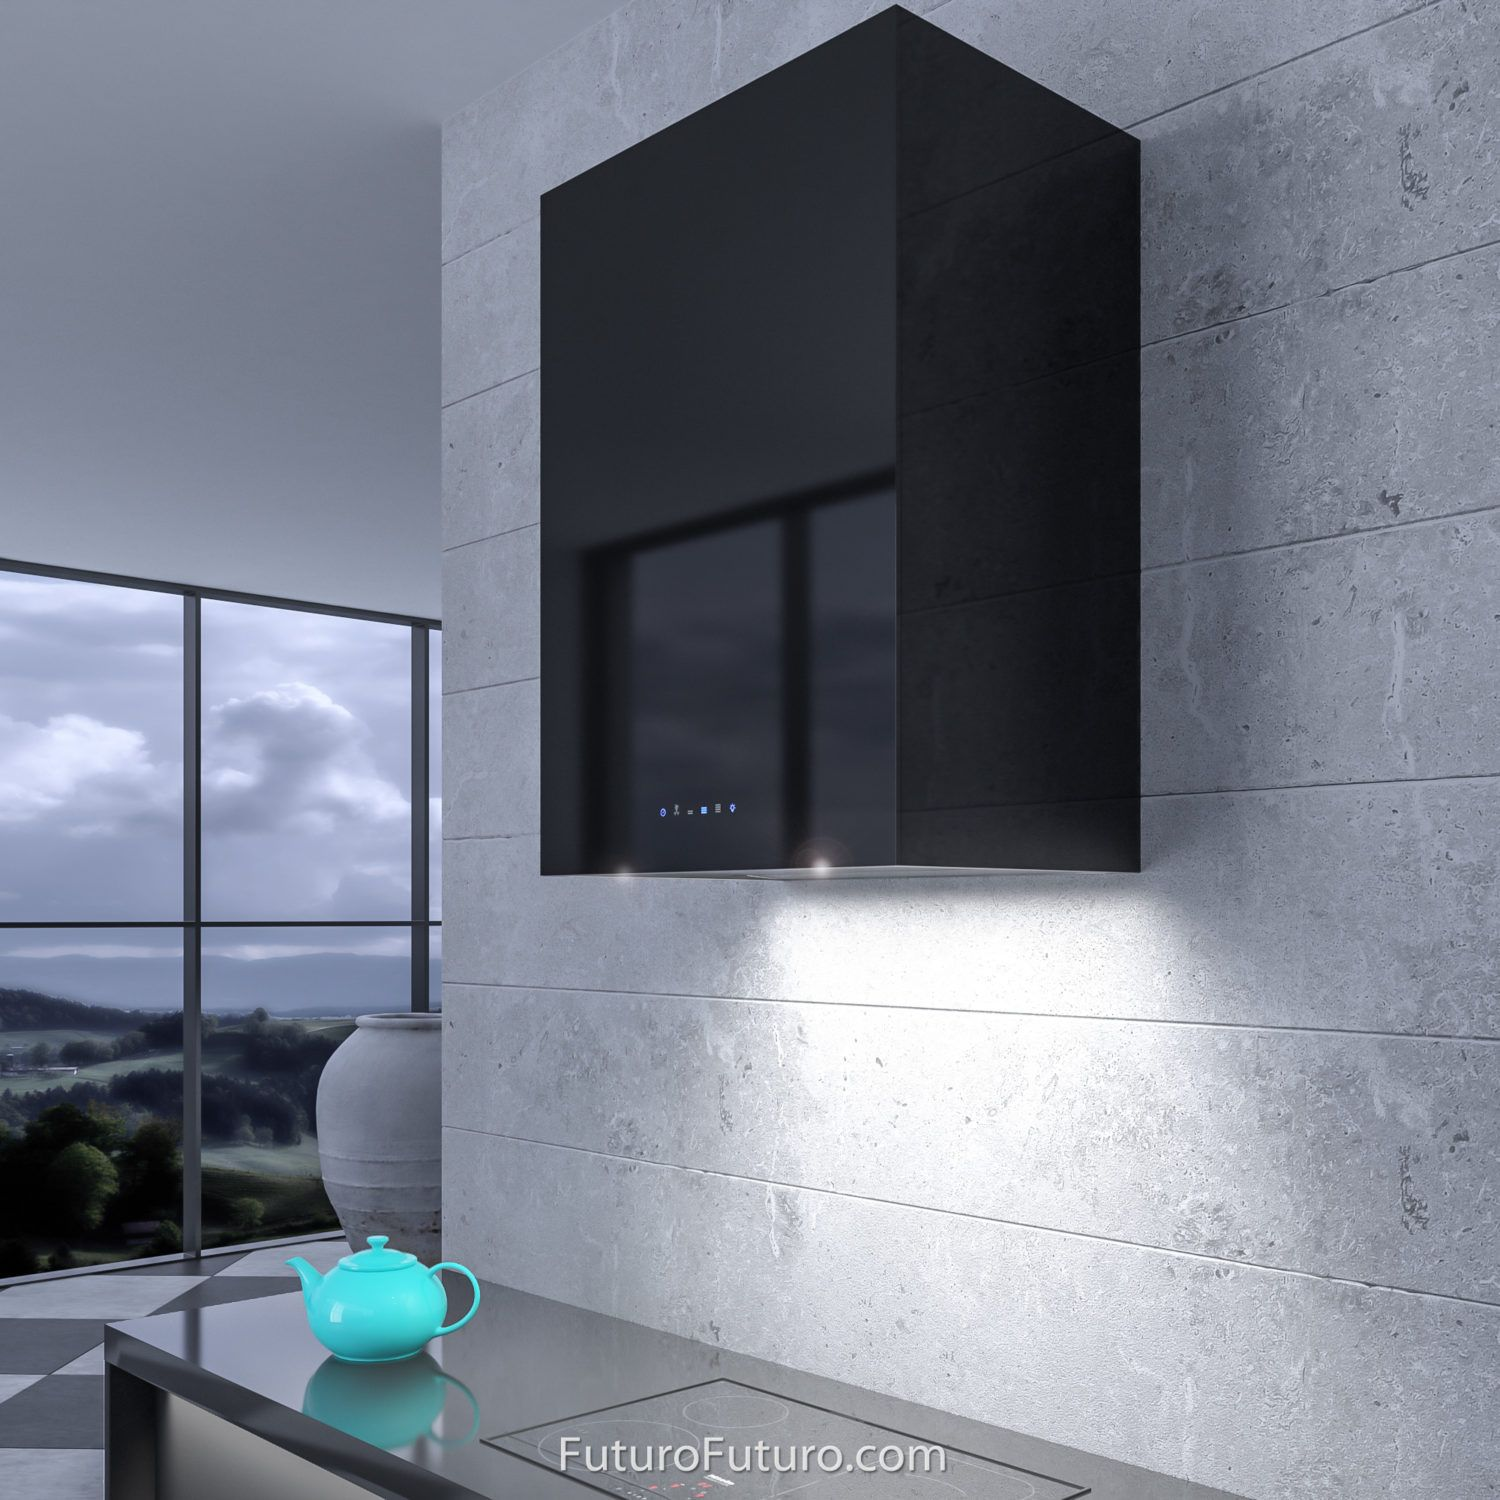 24 Lombardy Black Wall The Lombardy Series Range Hoods From Italian Manufacturer Futuro Futuro Are A Modern Kitchen Designer S Black Walls Range Hood Lombardy